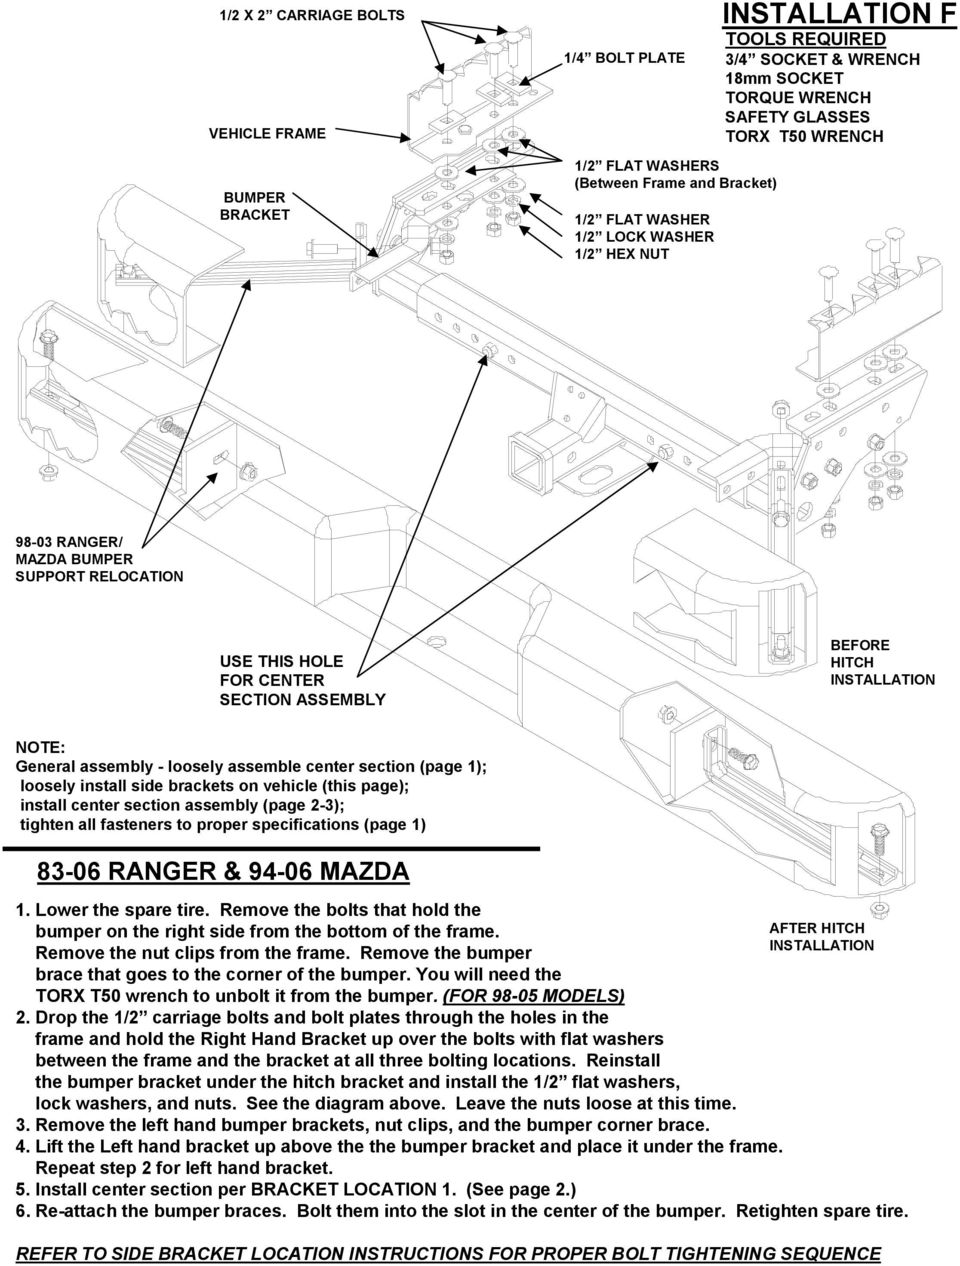 Installation Instructions Small Pickup Multi Fit Pdf 97 Blazer Wiring Diagram Washer Assembly Loosely Assemble Center Section Page 1 Install Side Brackets On